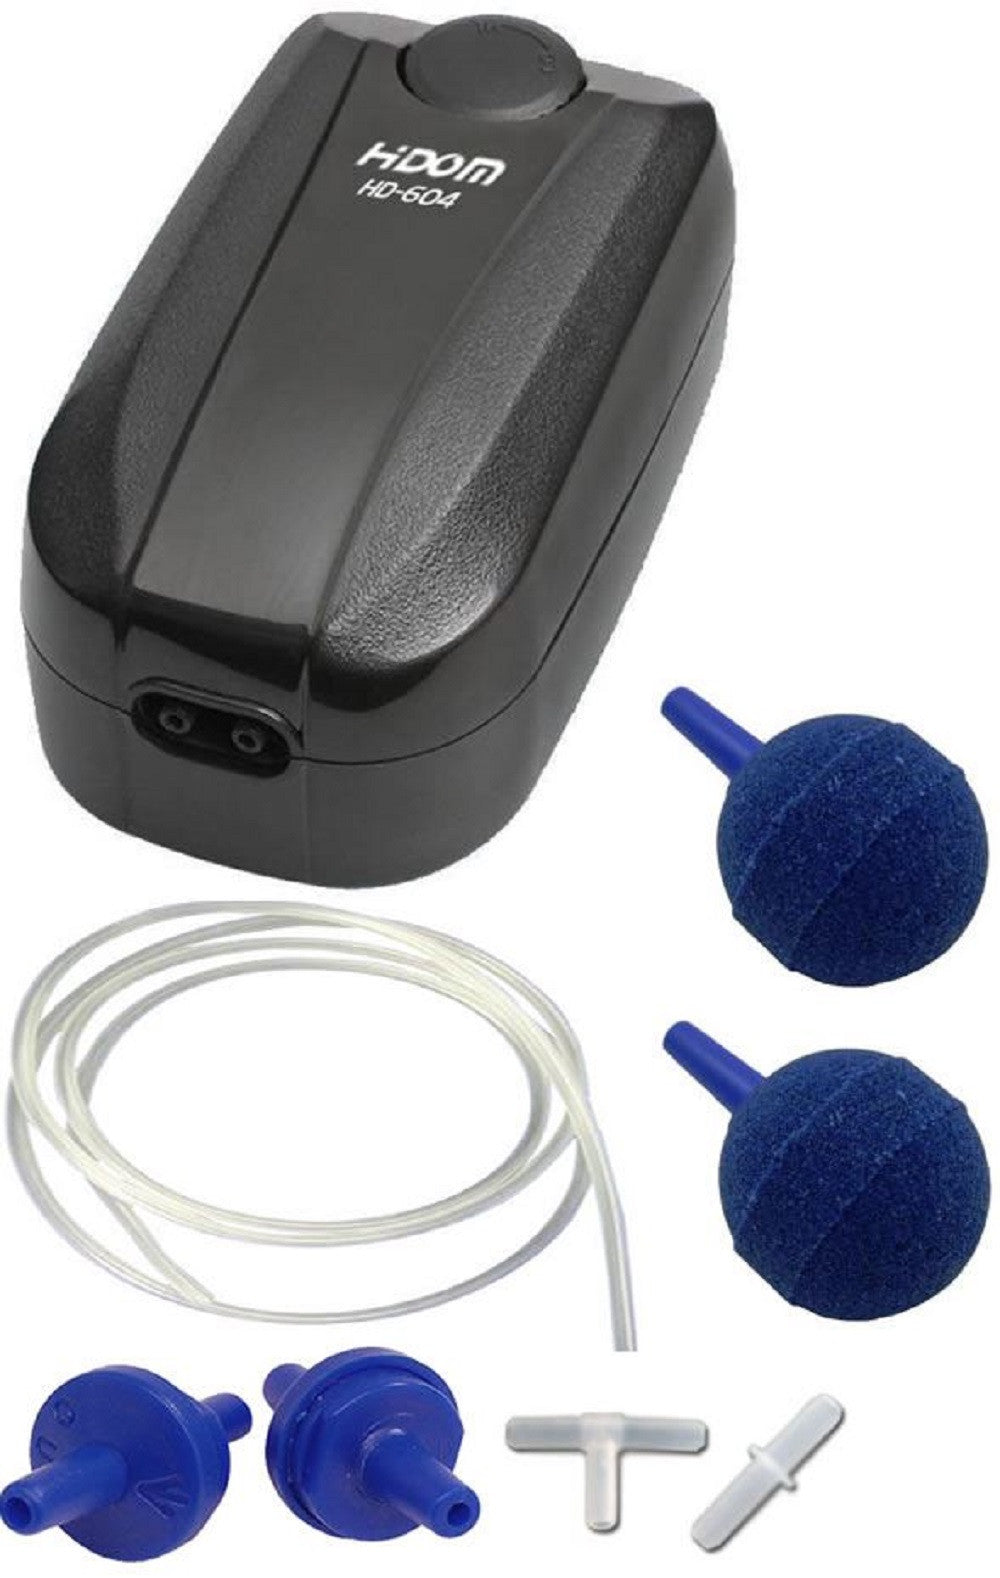 a glossy black twin outlet aquarium air pump with an adjustable dial and a selection of accessories